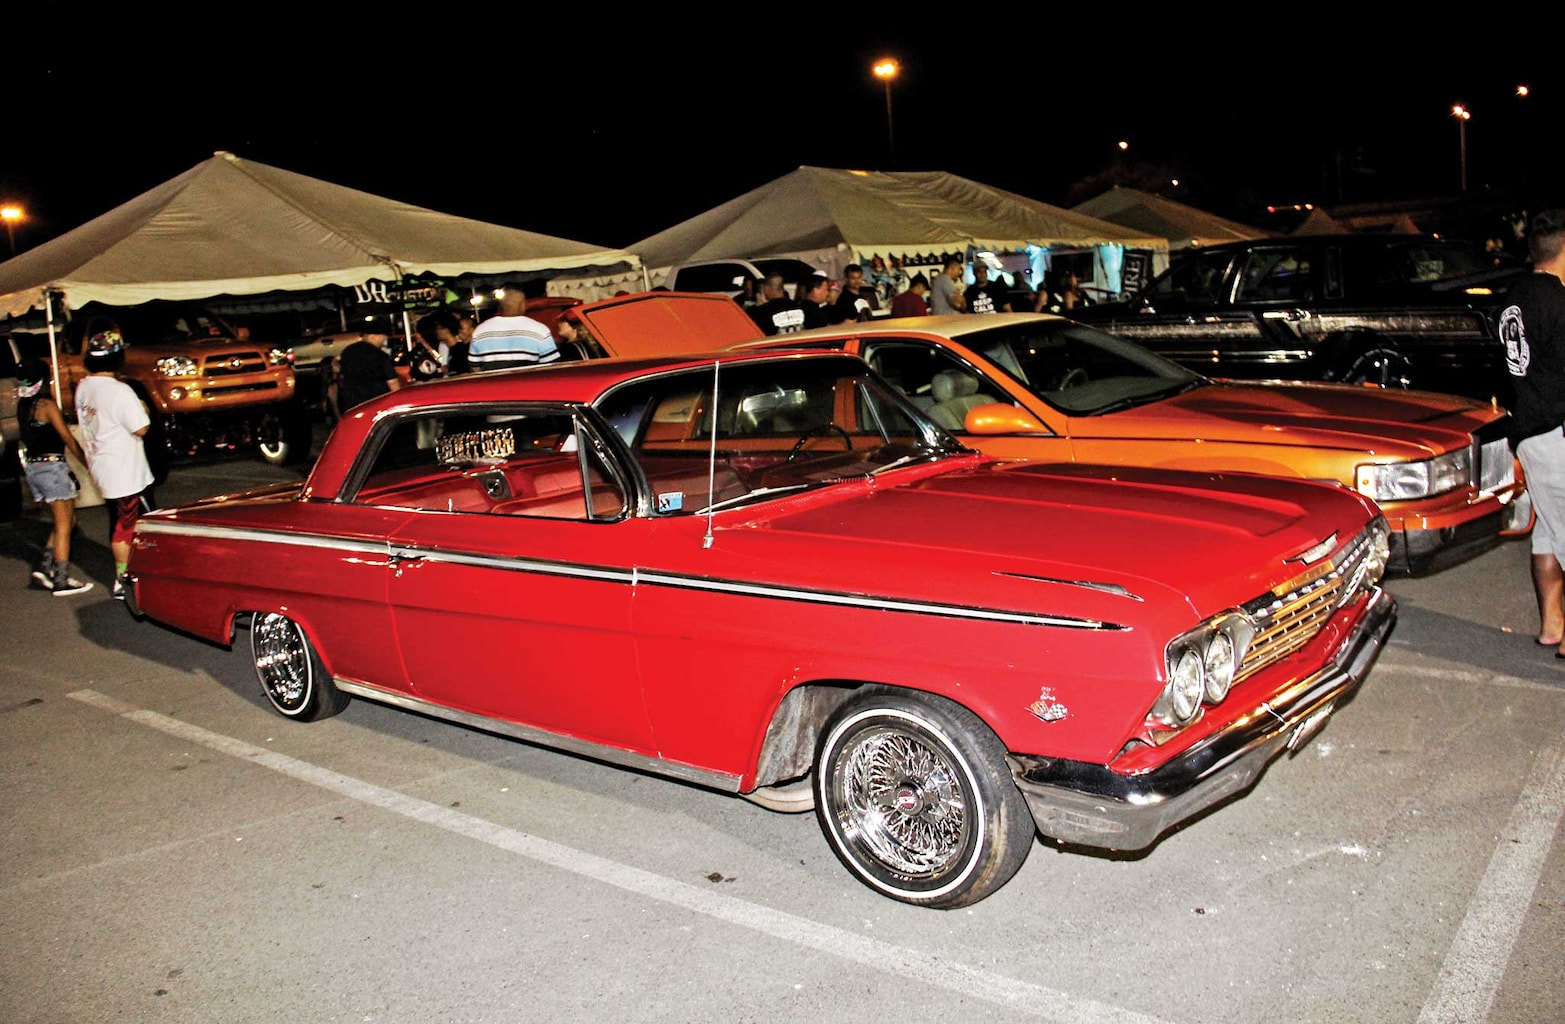 013 arts in motion ii impala